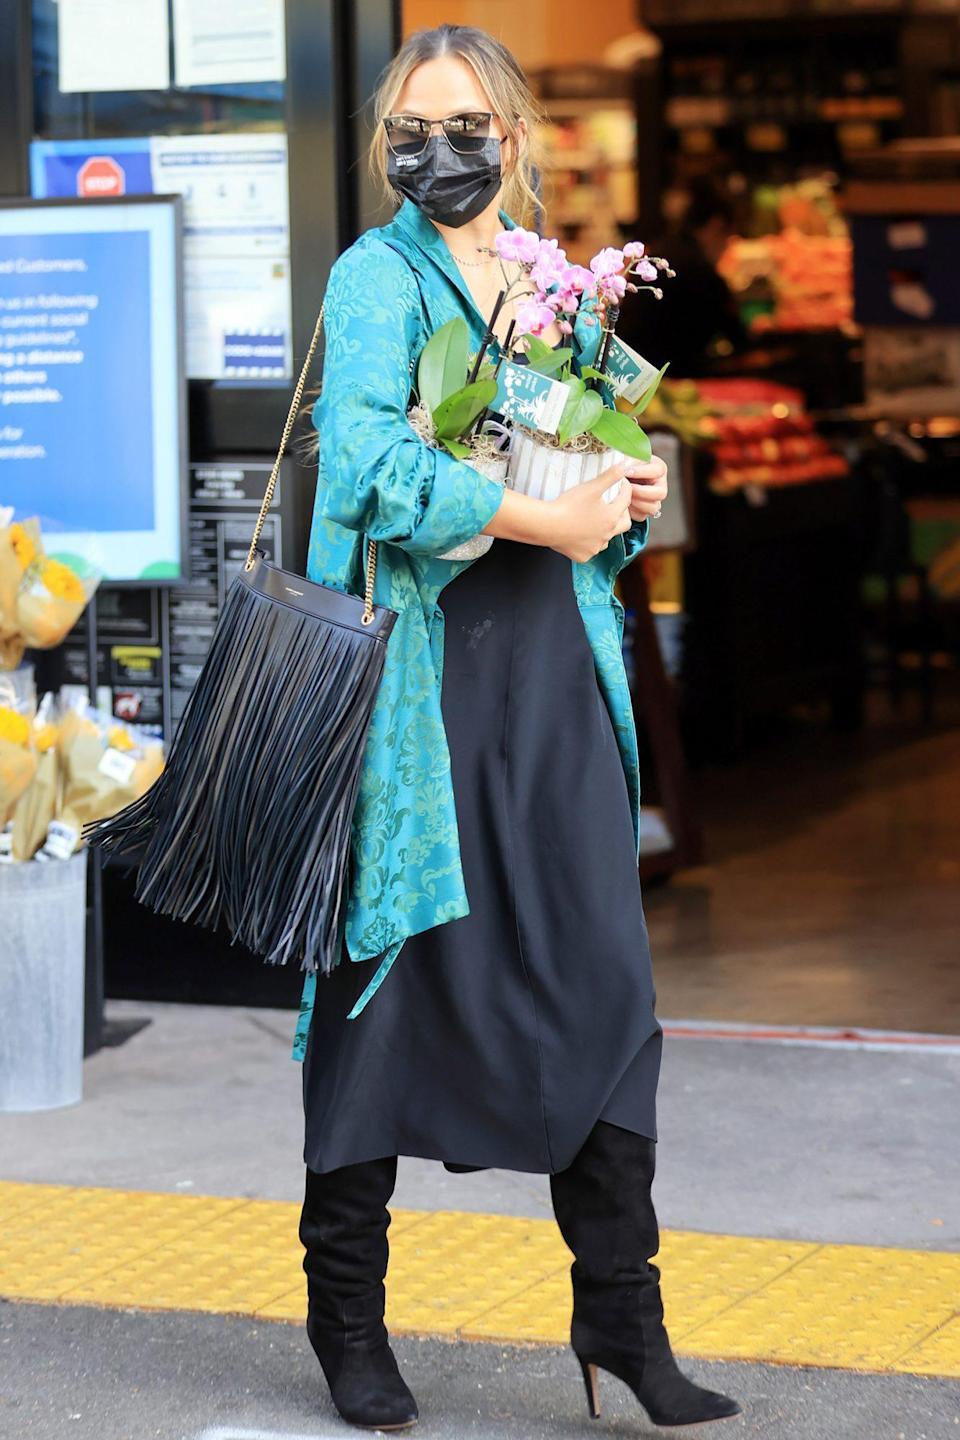 <p>Chrissy Teigen picks up some flowers while shopping in L.A. with her mom on Monday. </p>